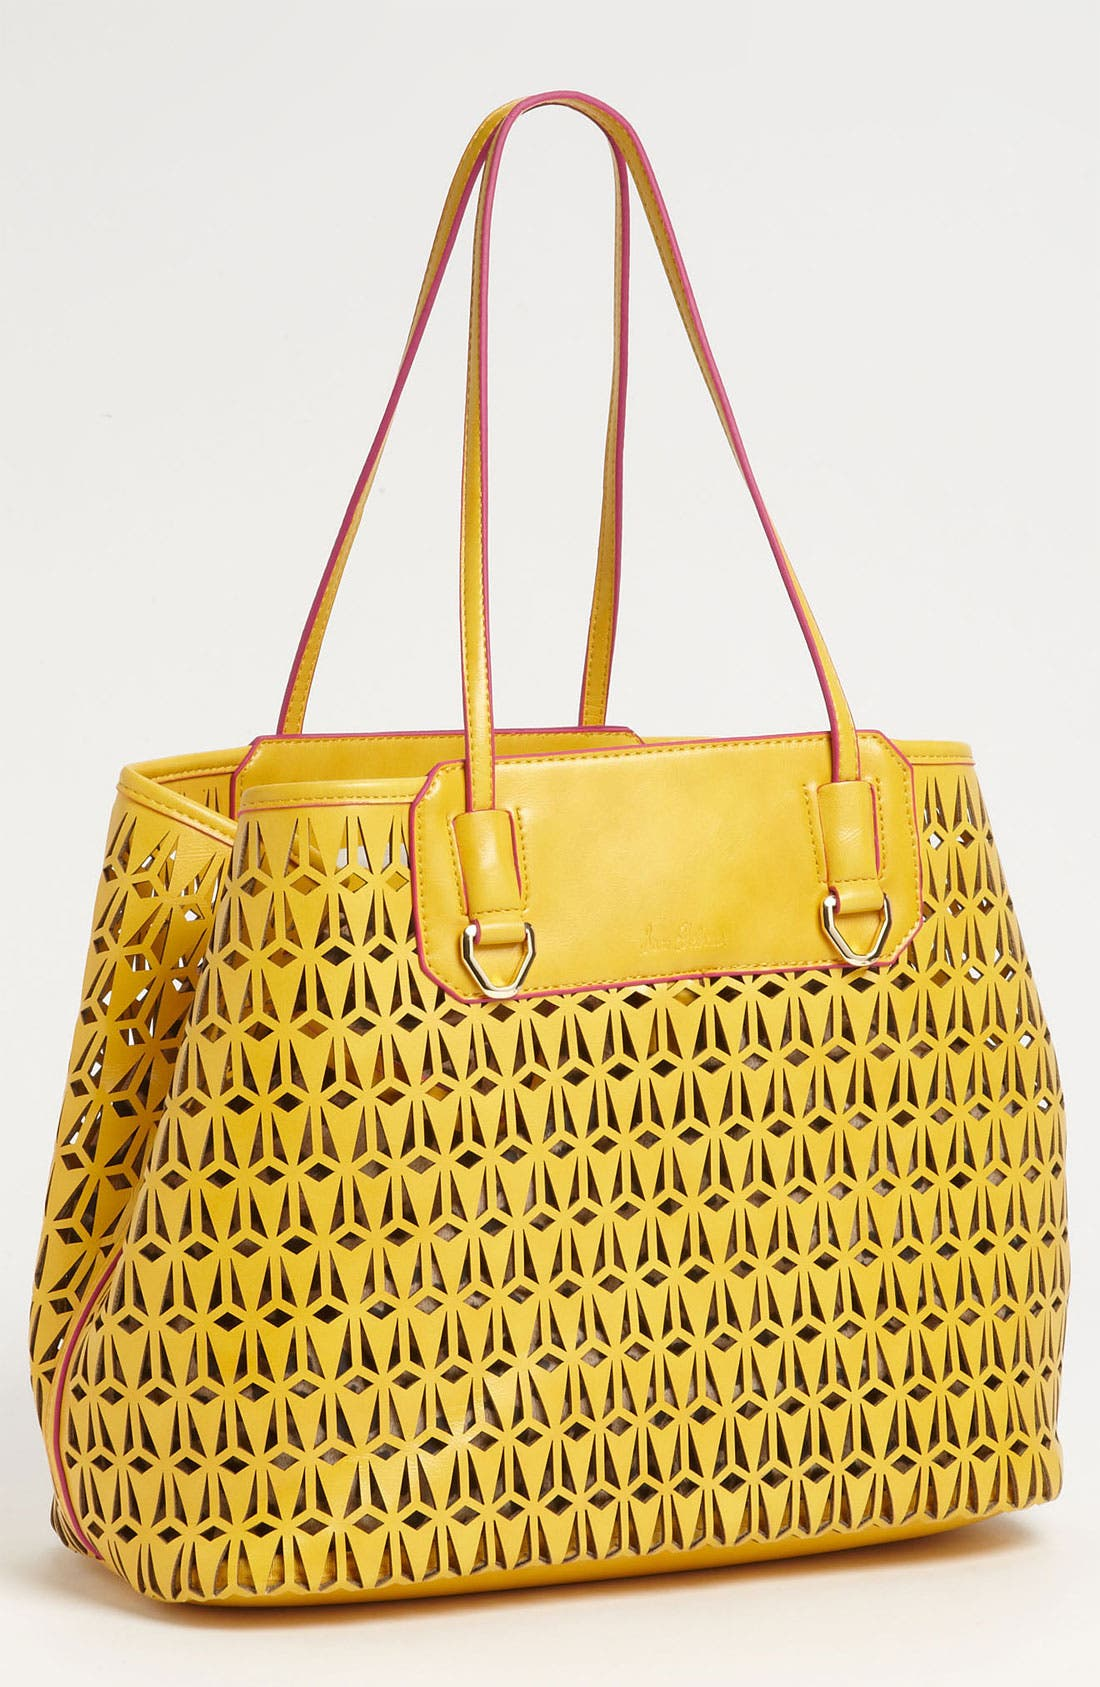 Alternate Image 1 Selected - Sam Edelman 'Marina' Perforated Tote